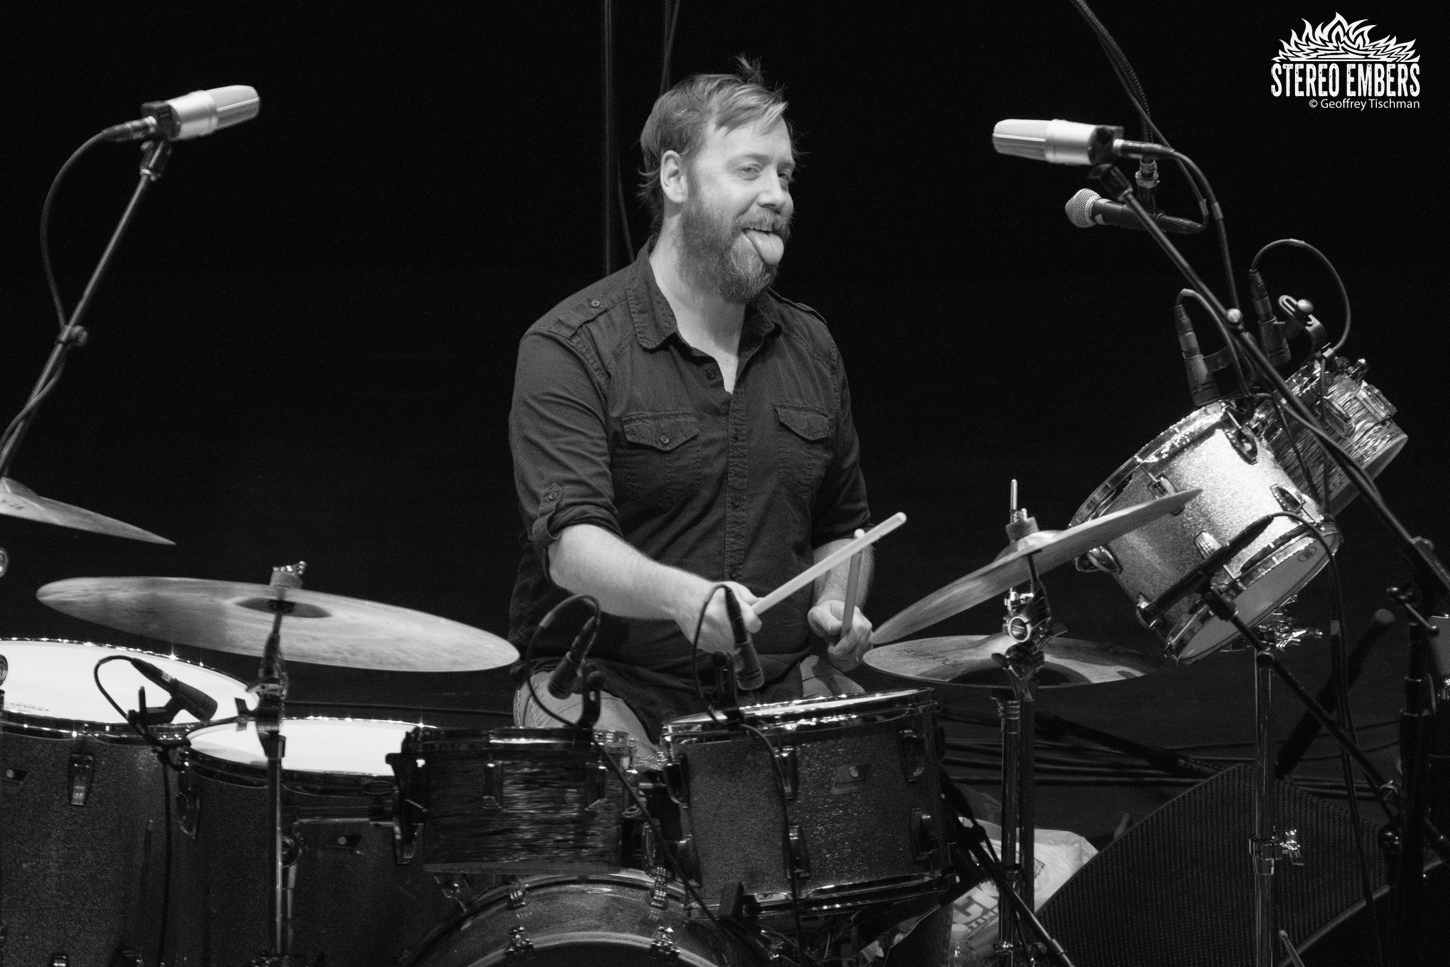 Joe Russo's Almost Dead Live At The Capitol Theatre